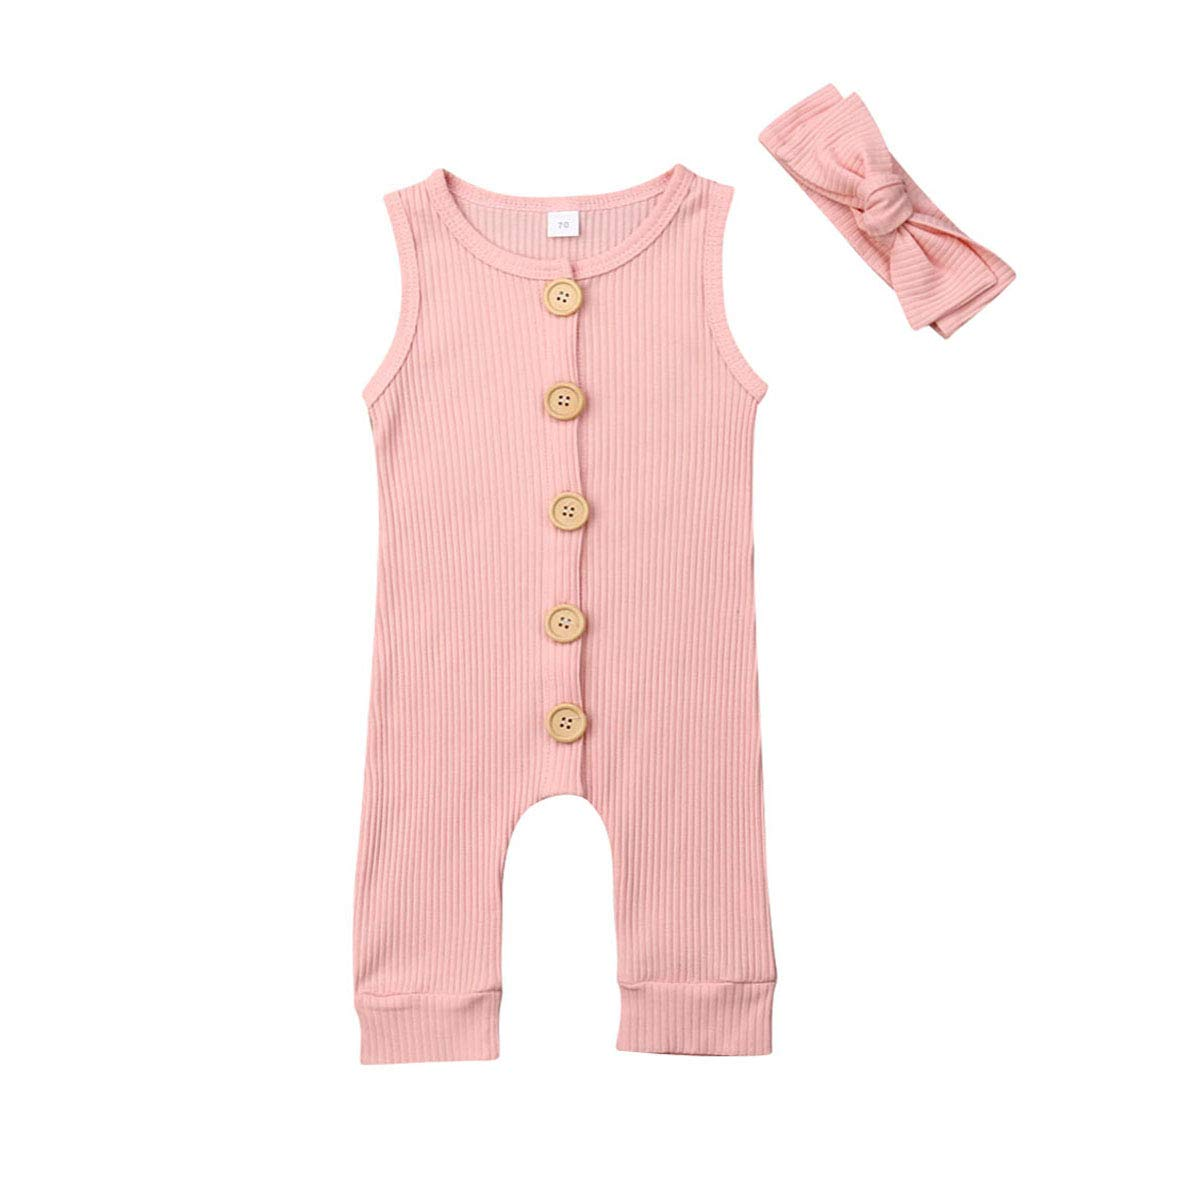 Ma.Lina.Ann Newborn Unisex Baby Boys Girls Solid Jumpsuit Cute Knitted Button Romper One Piece